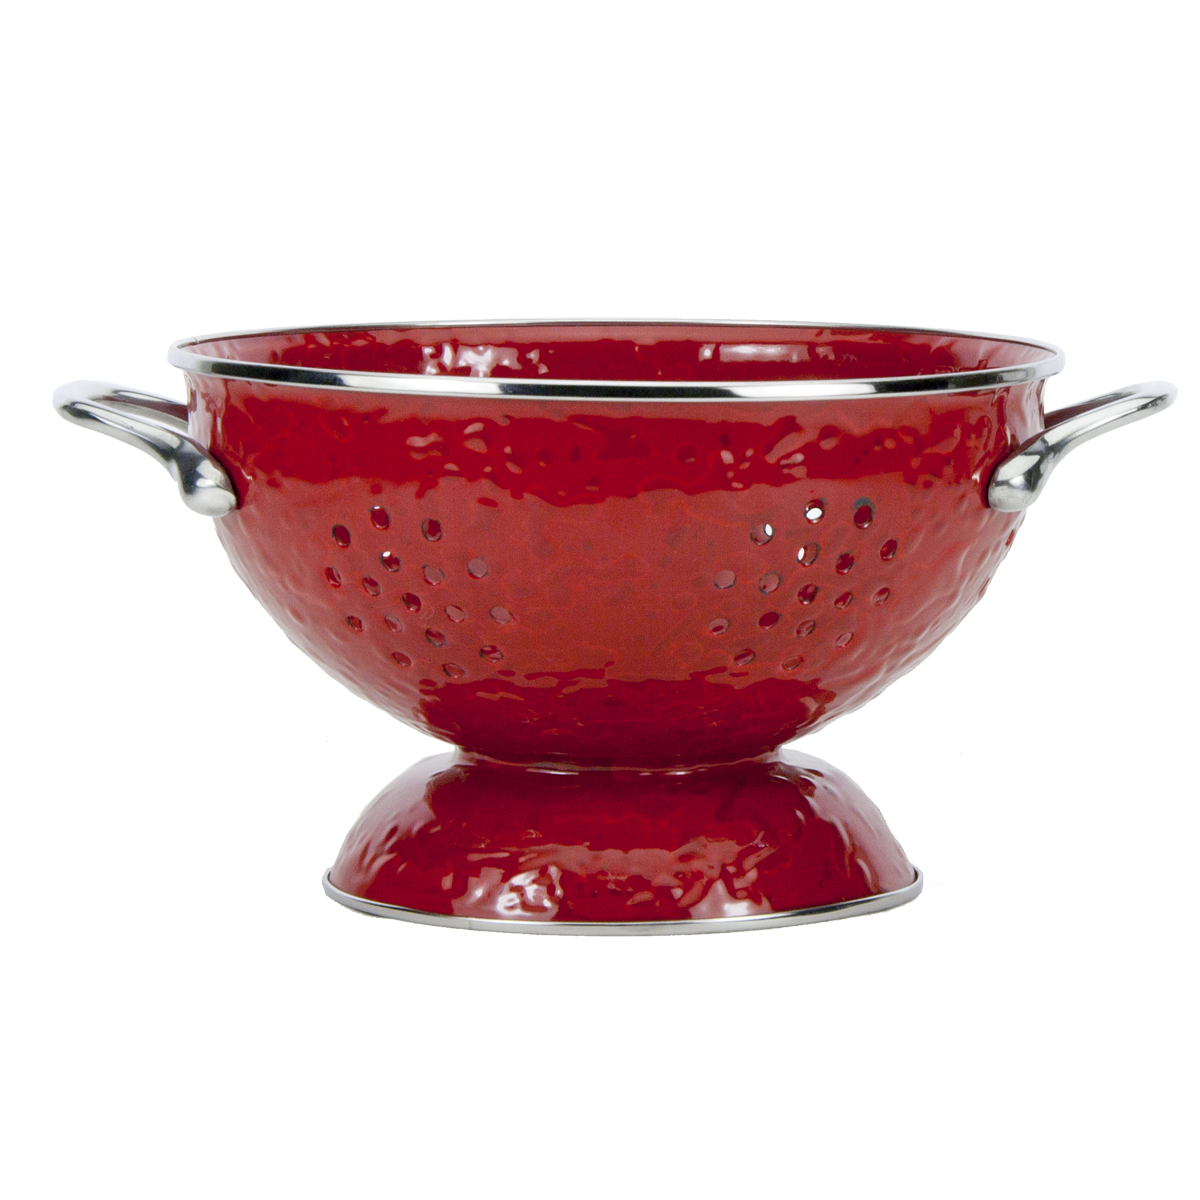 RR27 Solid Red Colander